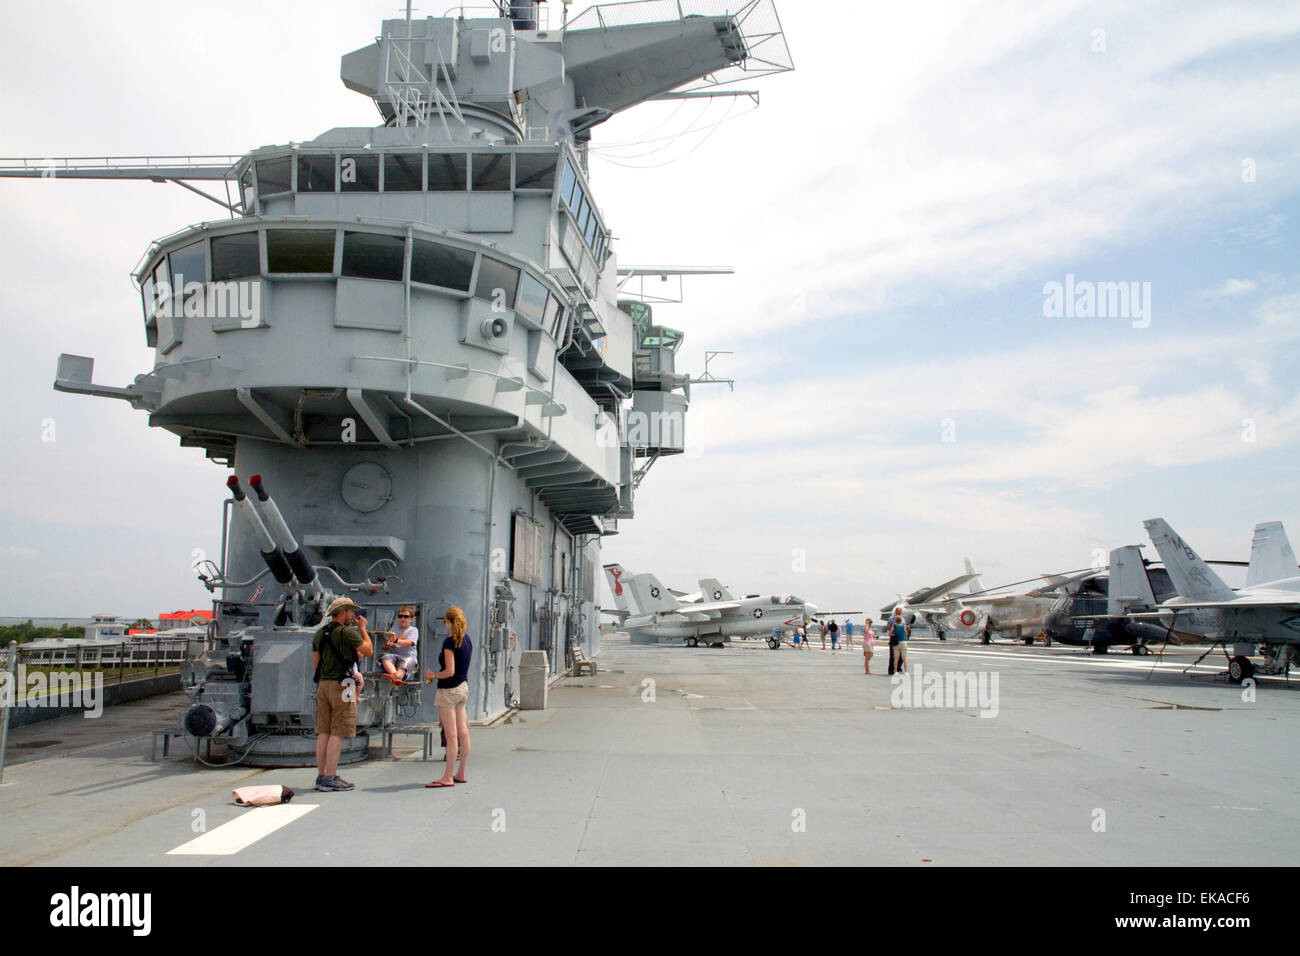 The USS Yorktown aircraft carrier at Patriots Point Naval and Maritime Museum located in Mount Pleasant, South Carolina, - Stock Image